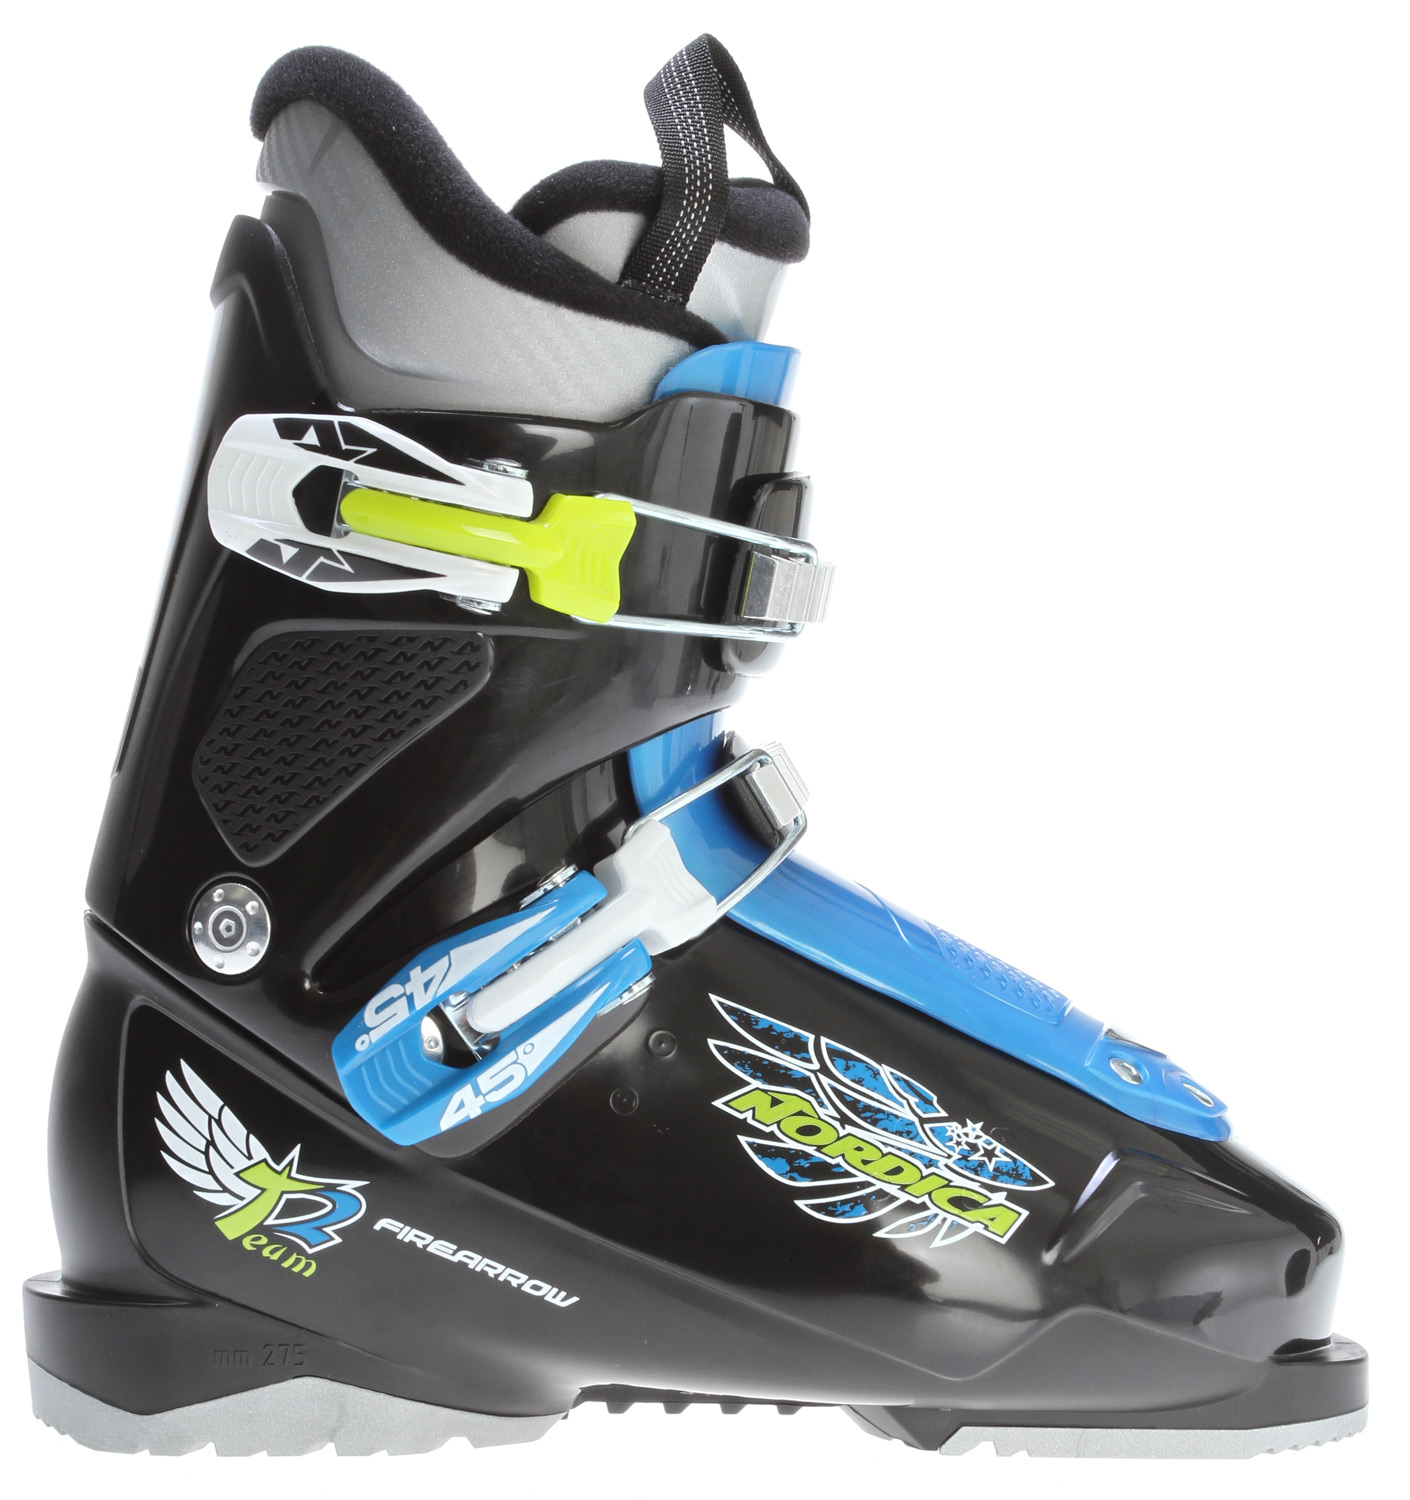 Ski No matter what age your skier, Nordica Junior boot collection has a boot that will grow with your child and be a comfortable easy boot to use.Key Features of the Nordica Firearrow Team 2 Ski Boots:  45 degree Instep retention  Progressive flex with tongue rebound  3 PC easy entry shell construction  Comfort fit JR liner  Size range 16.0-23.5 MP  Last 100mm - $88.95